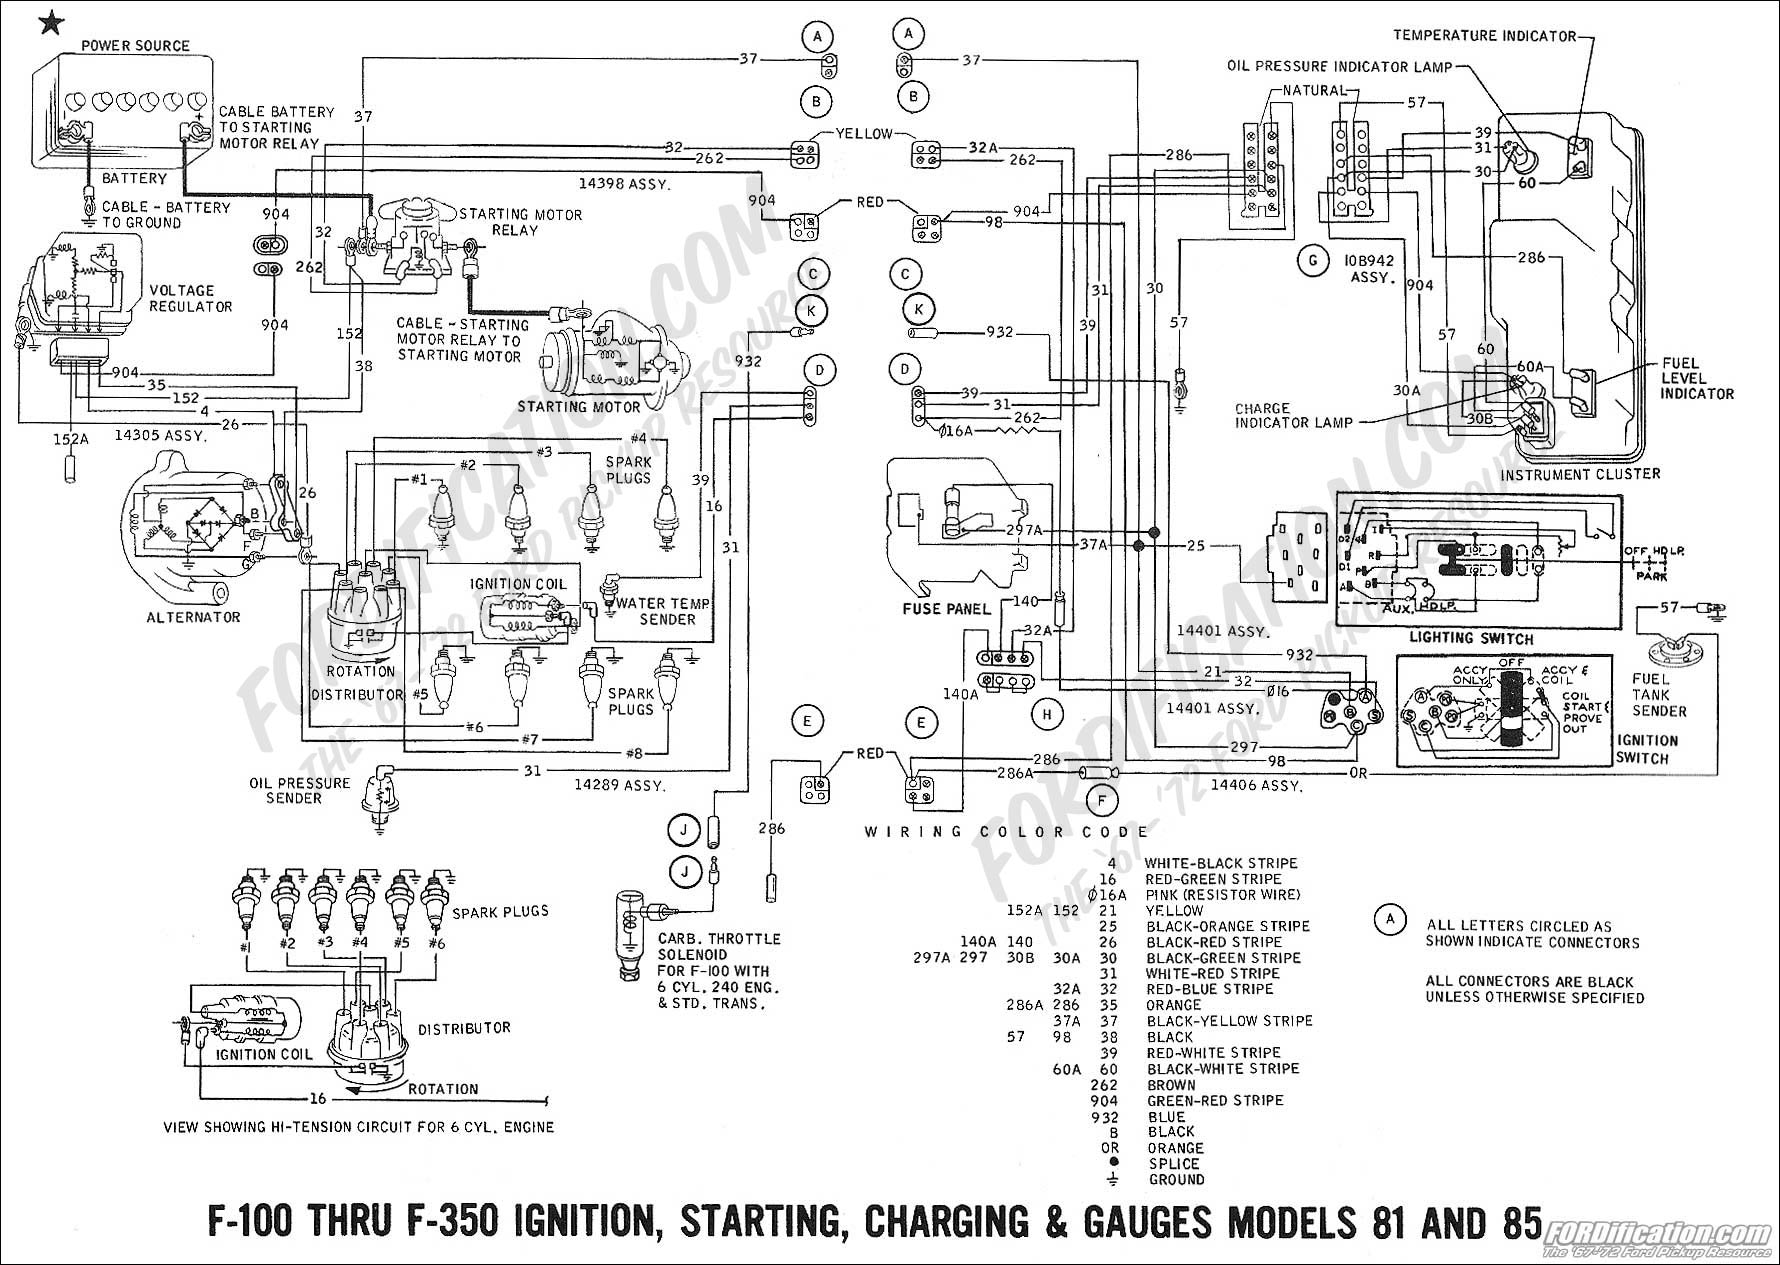 1968 ford f 250 engine wiring diagram schematics wiring diagrams u2022 rh seniorlivinguniversity co